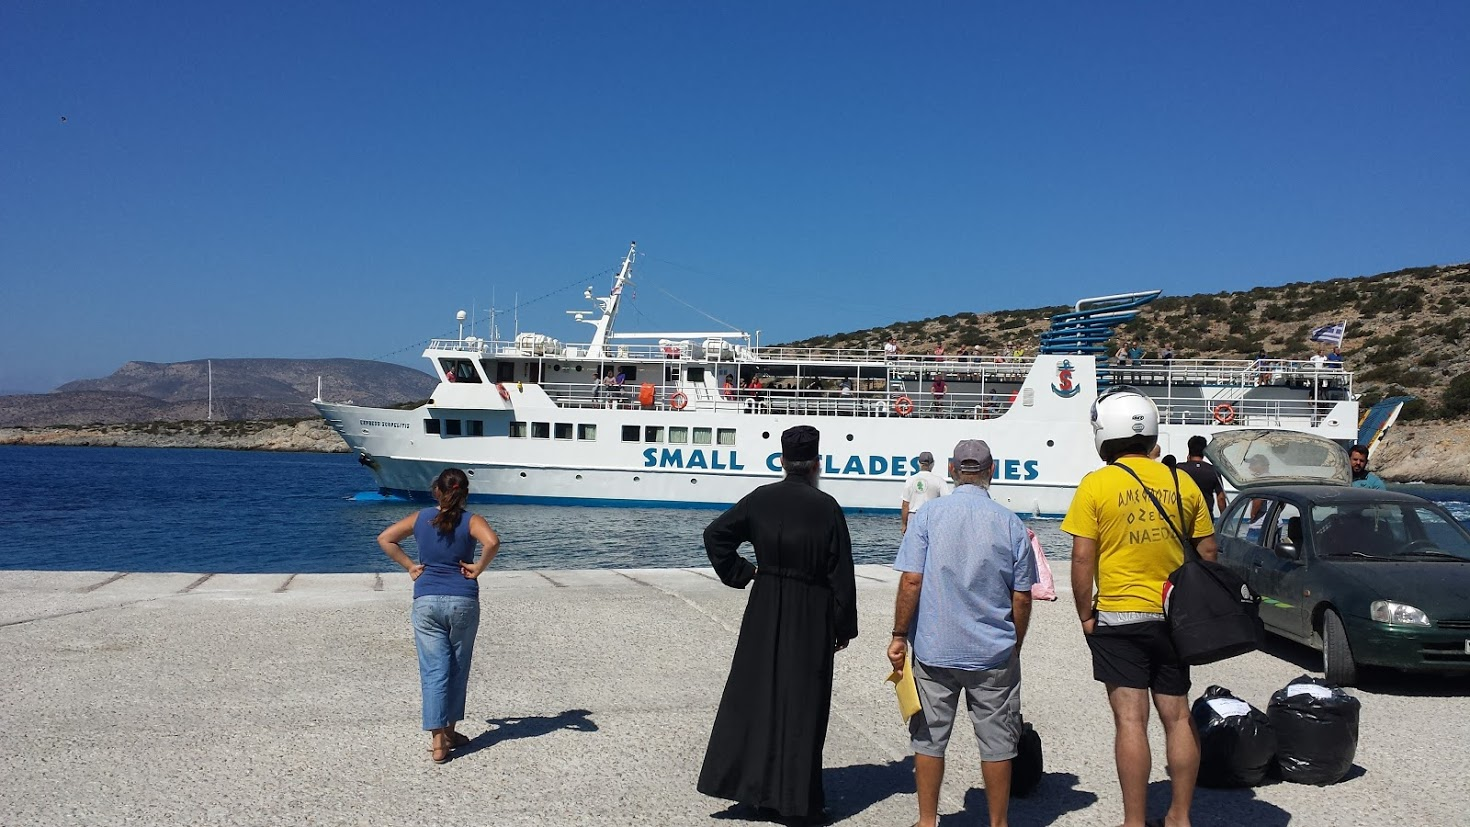 Small Cyclades Ferry